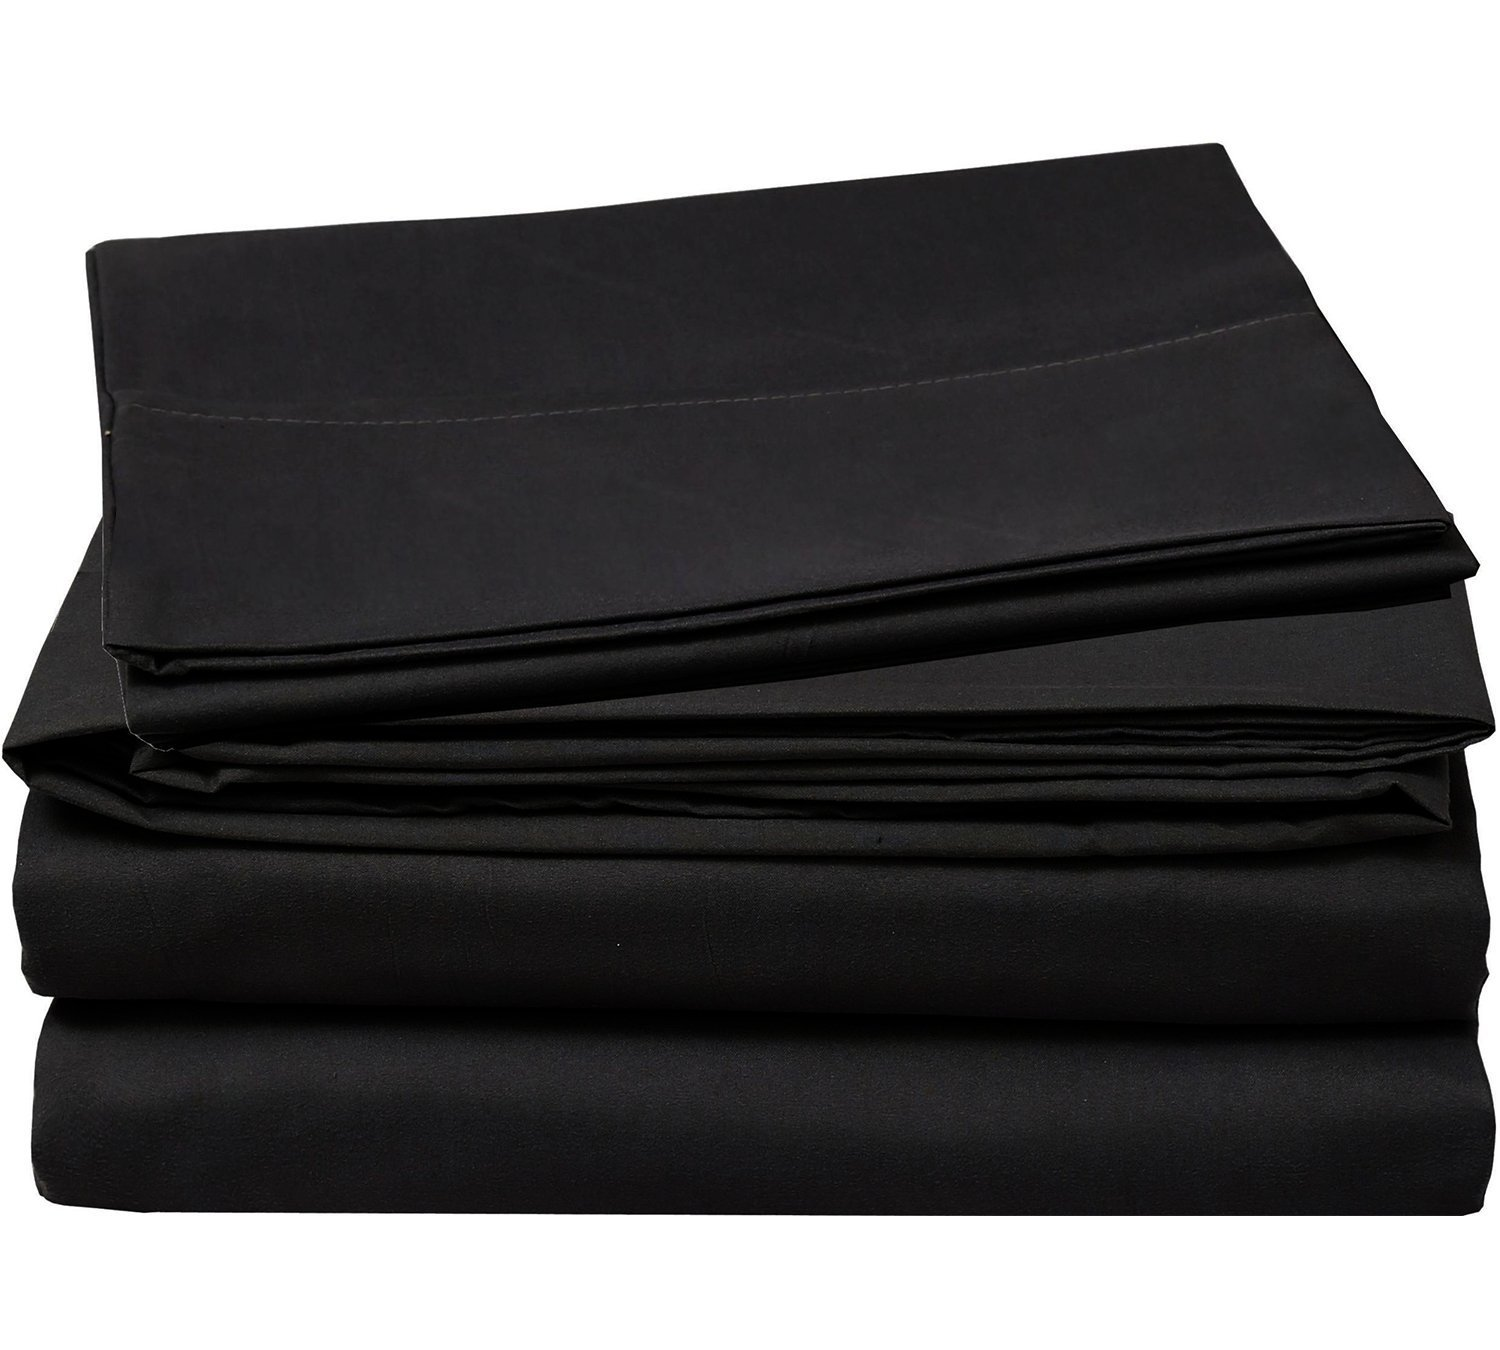 4 Piece Bed Sheets Set Queen, Black Flat Sheet